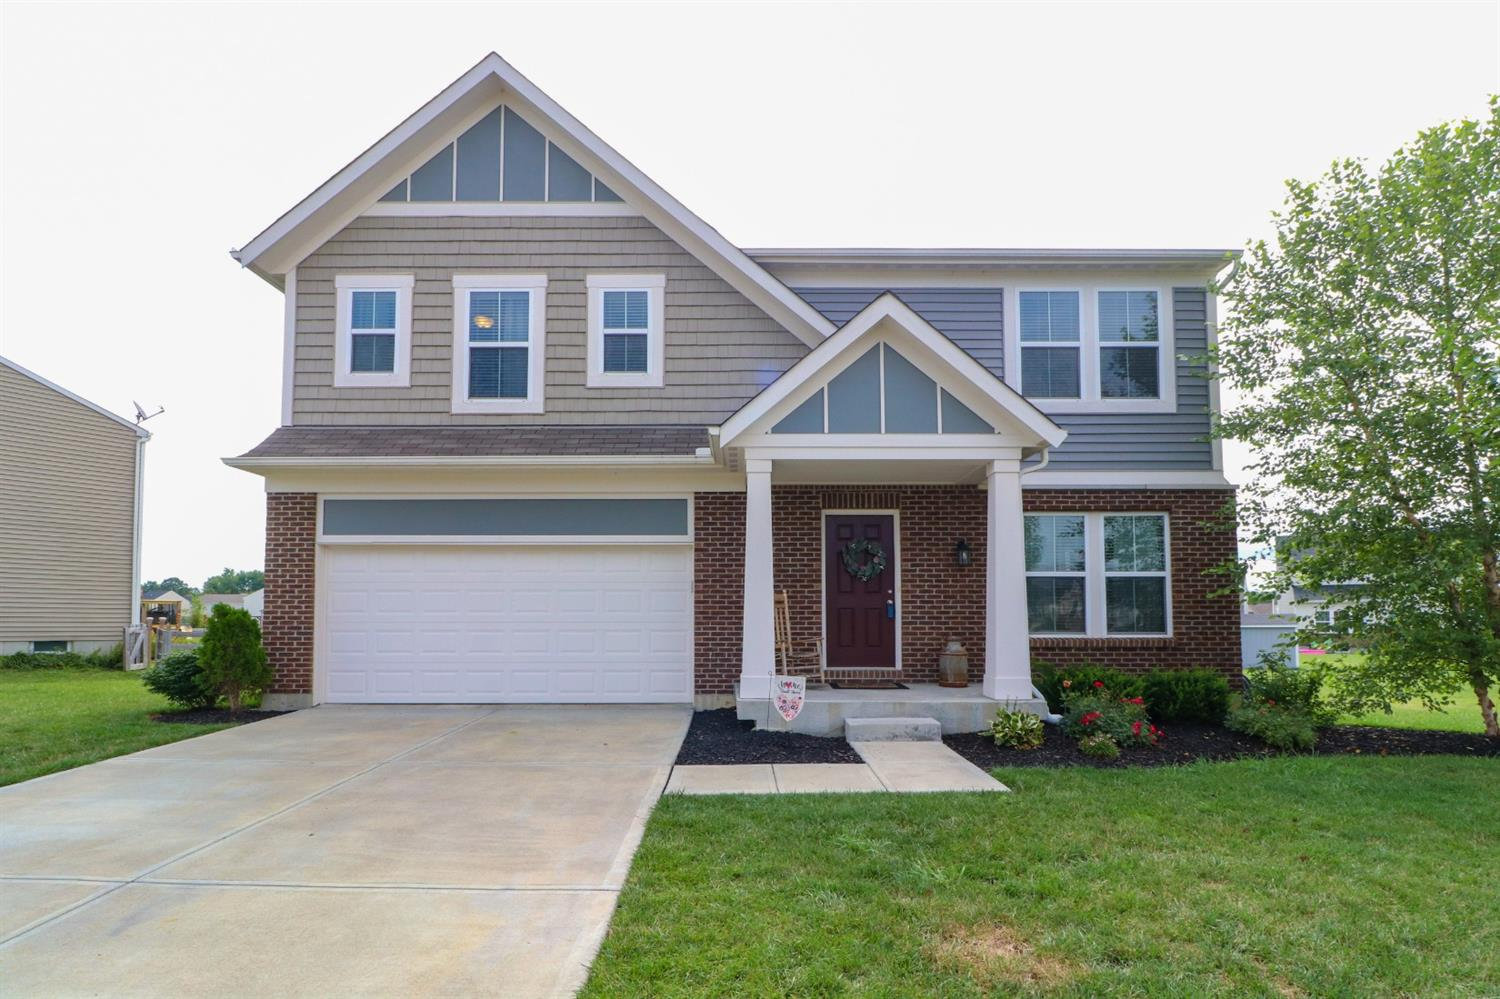 Property for sale at 1204 Michael Drive, Harrison,  Ohio 45030